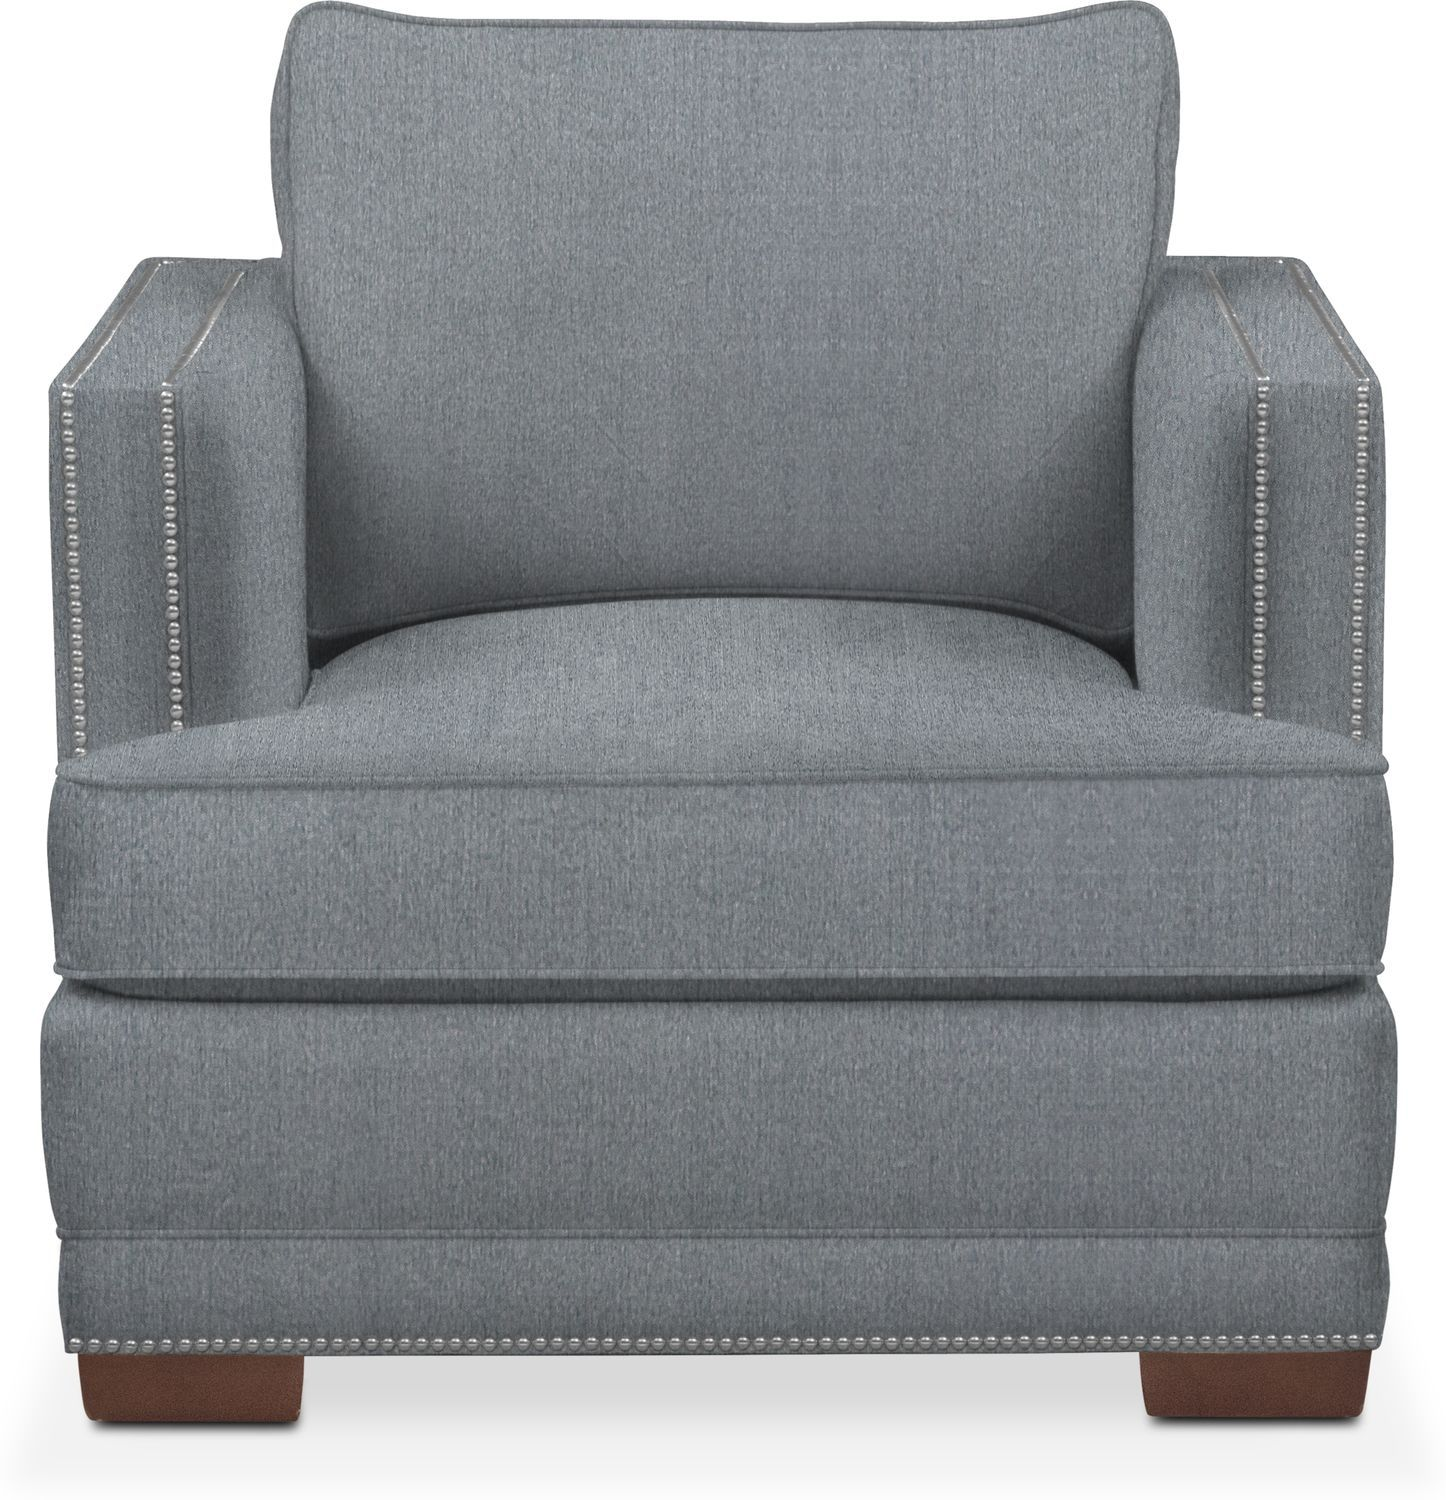 Arden Cumulus Chair Synergy Pewter In 2019 Products Pewter